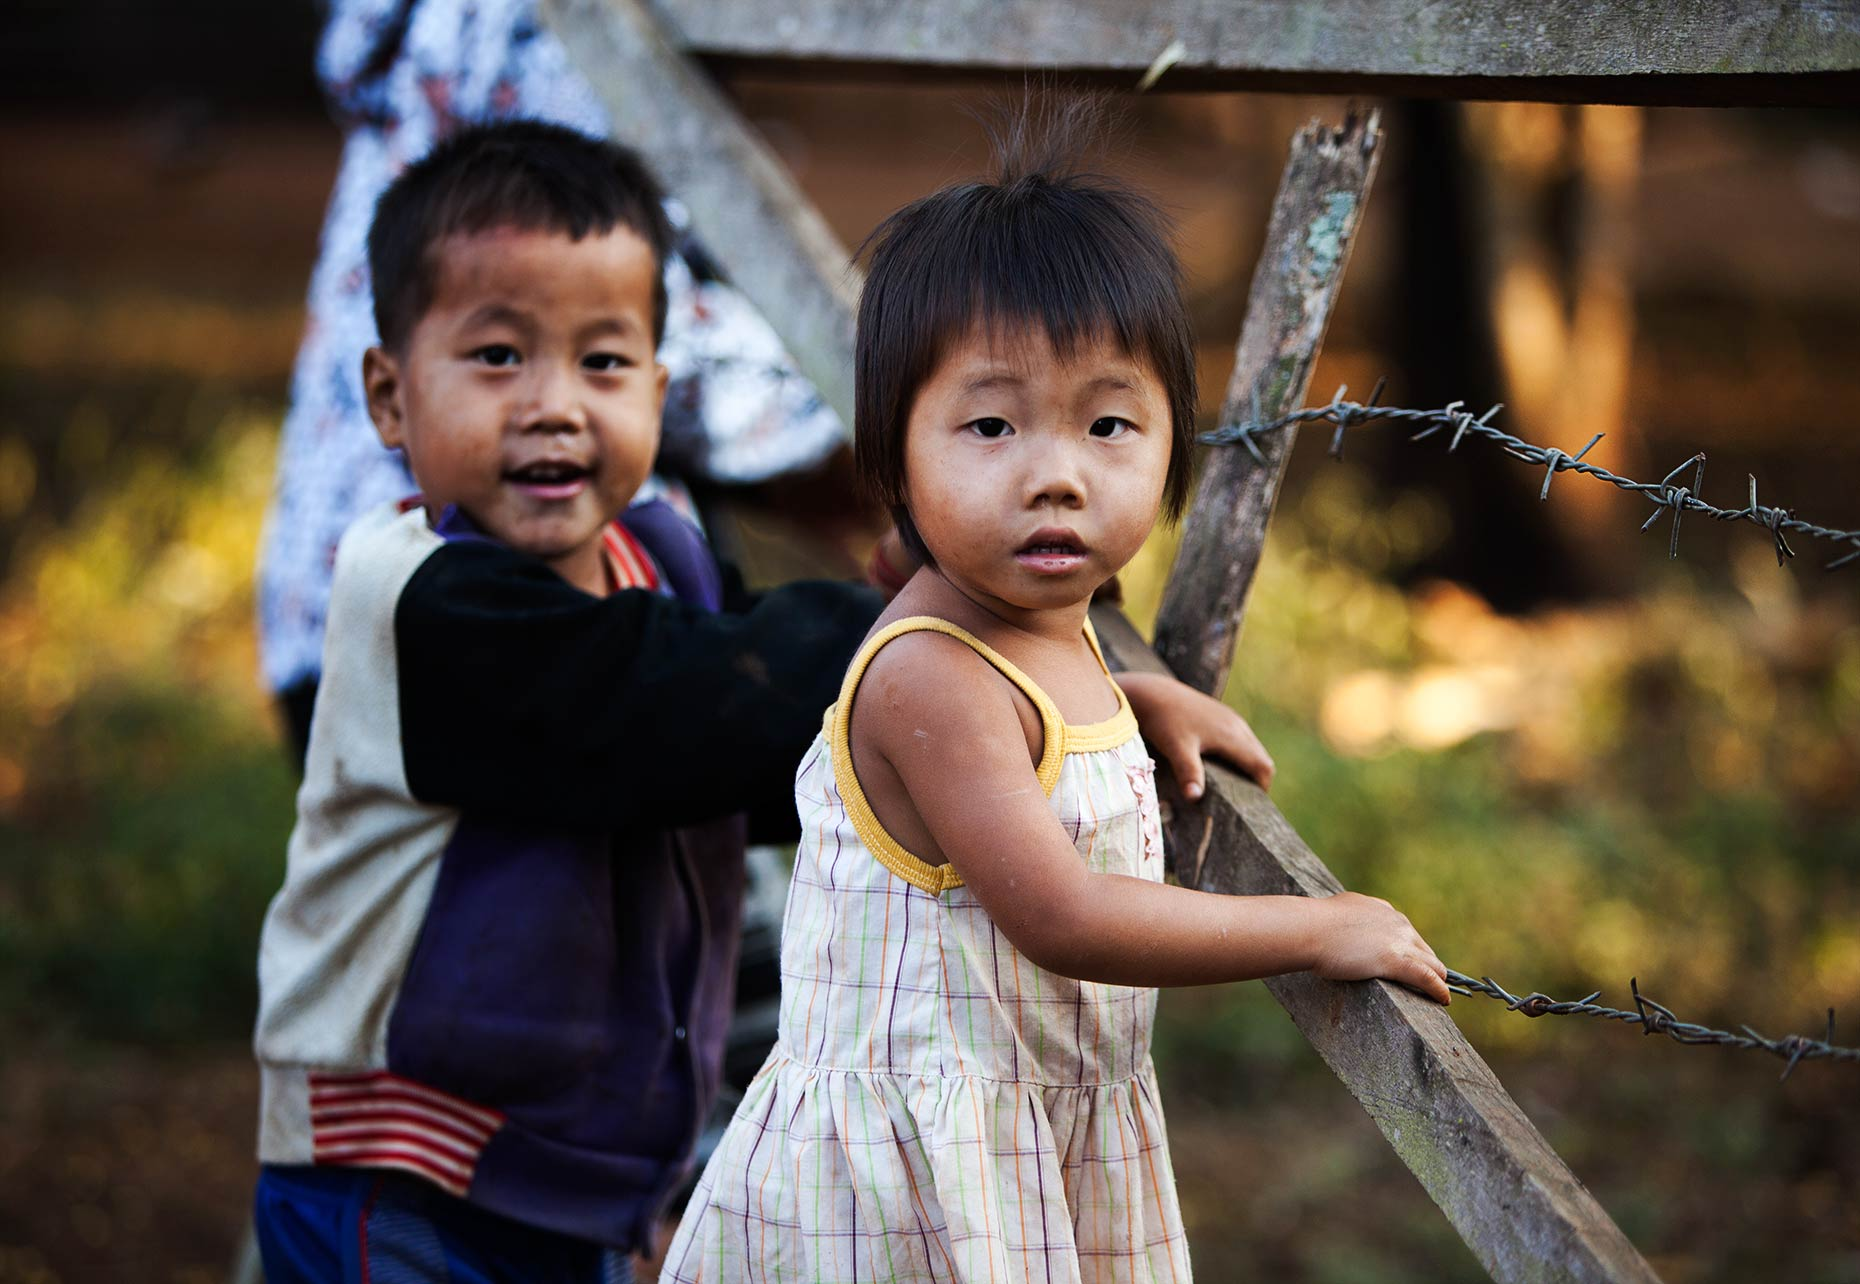 Hmong children Laos